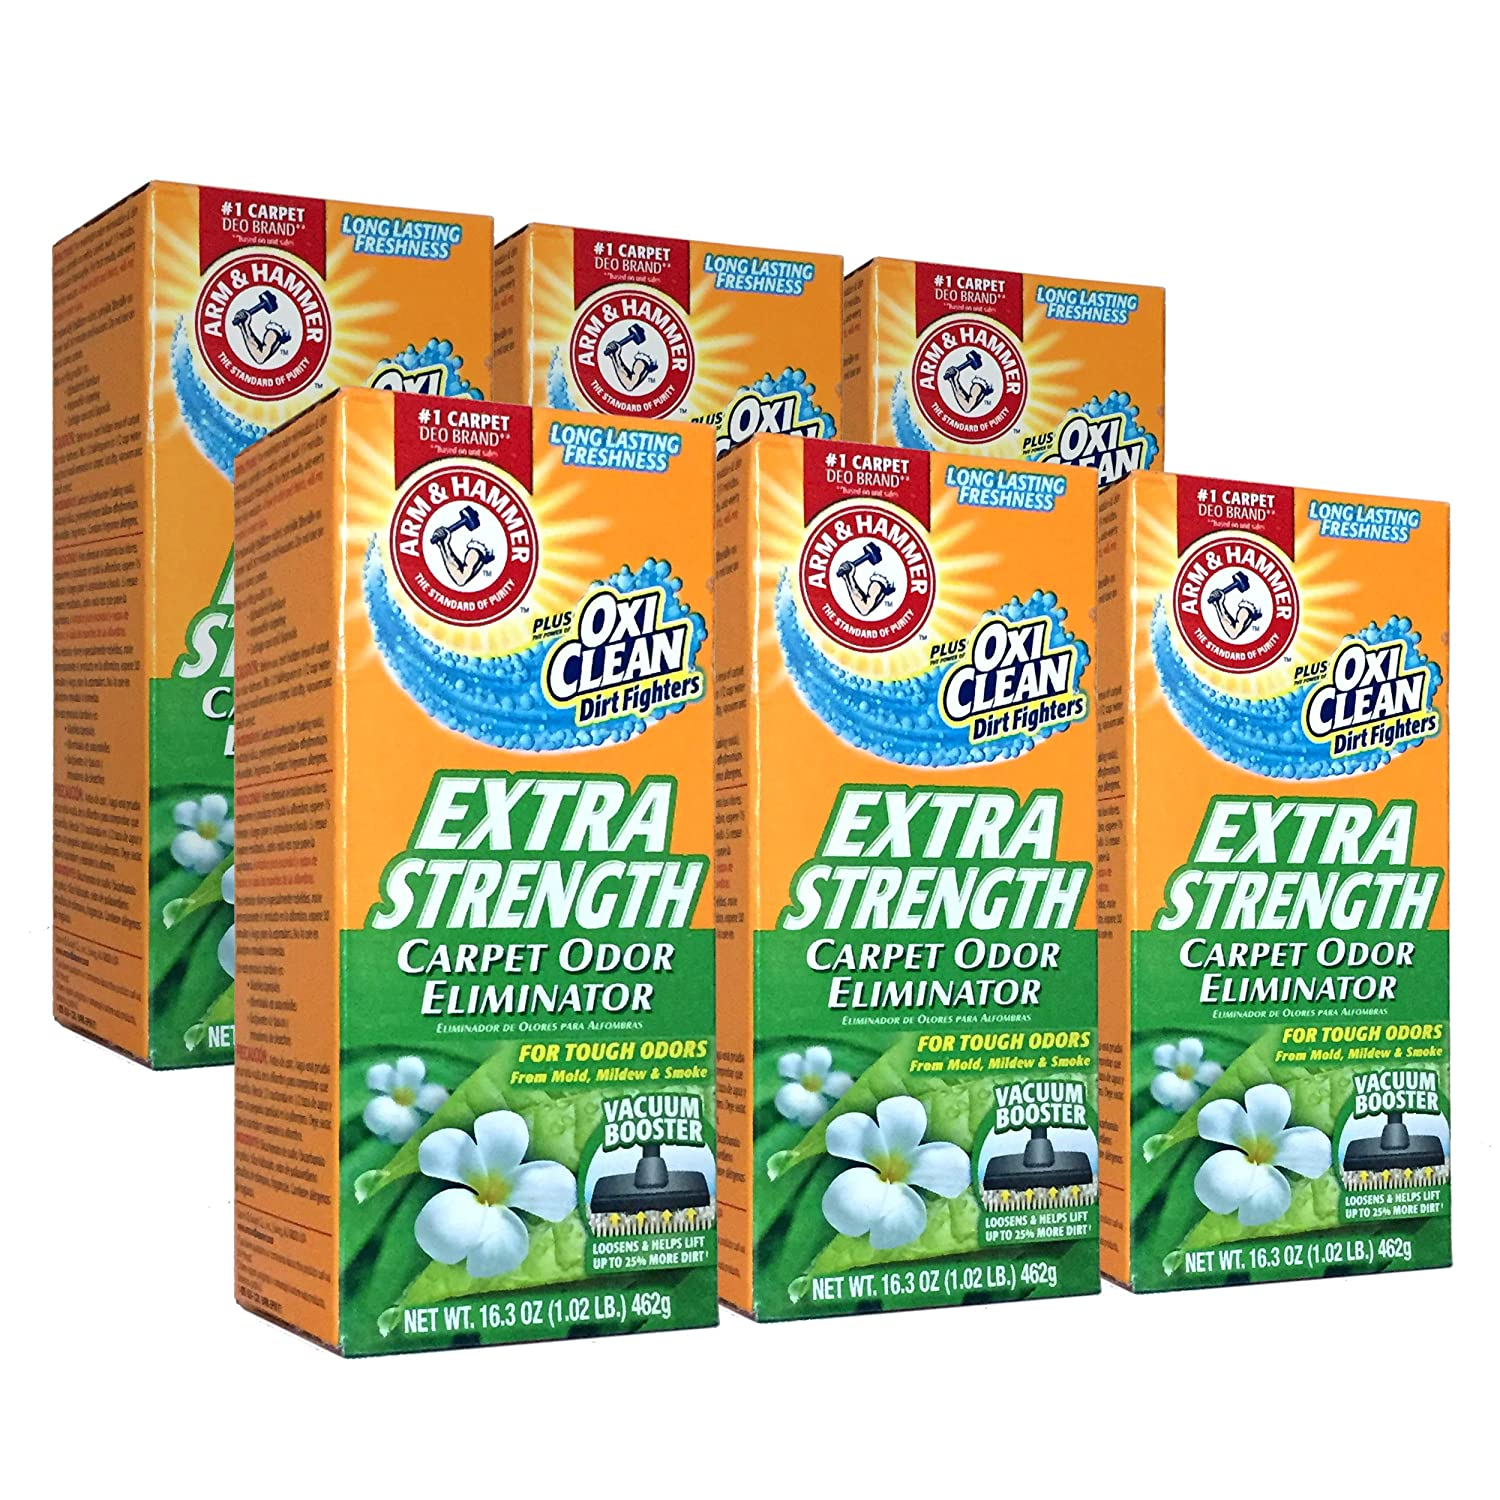 New 361970 Arm Hammer Extra Strengh 16.3Z Carpet Odor Eliminator (6-Pack) Laundry Detergent Cheap Wholesale Discount Bulk Cleaning Laundry Detergent Firesale